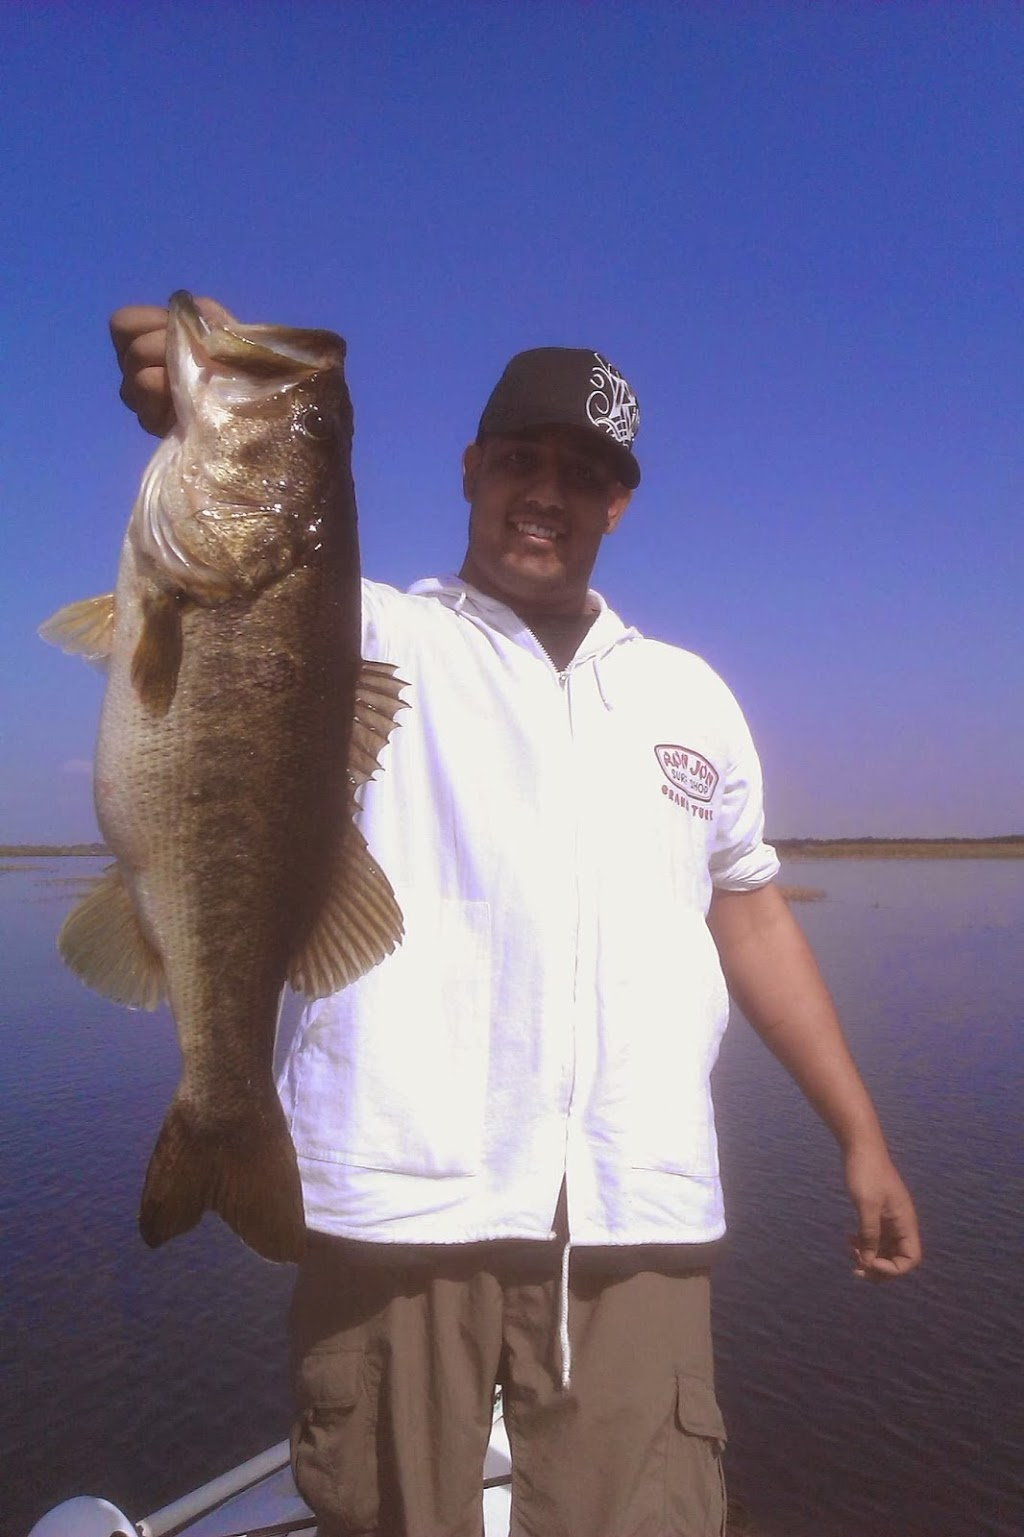 Gators Big Bass Guide Service - travel agency  | Photo 4 of 10 | Address: 70 Lakeview Dr, Kissimmee, FL 34741, USA | Phone: (407) 856-7961